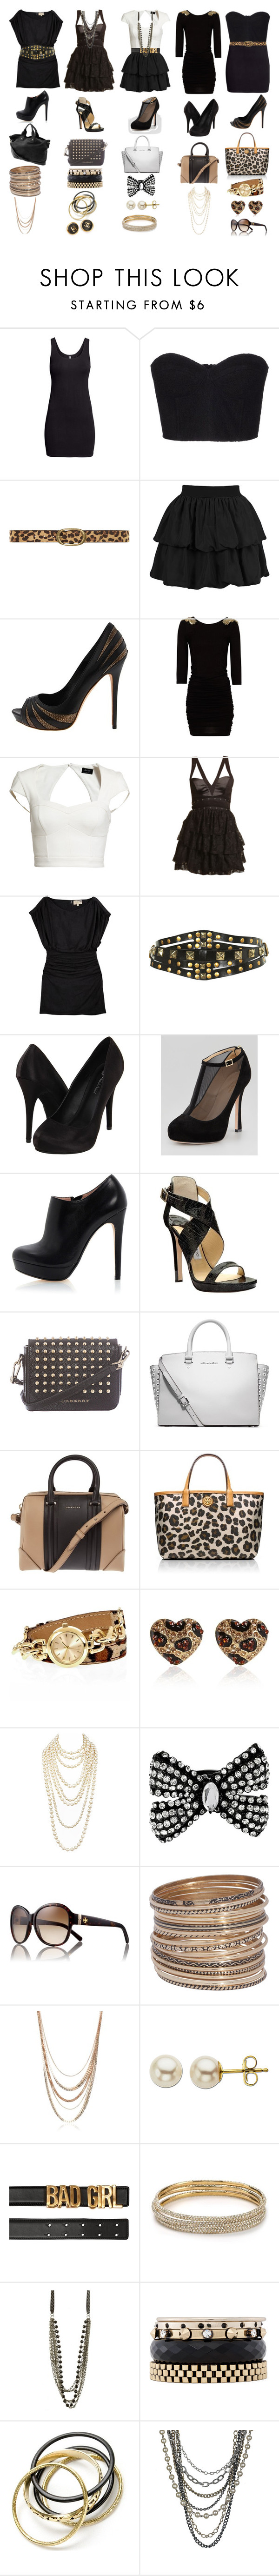 """Geen titel #705"" by herrroool ❤ liked on Polyvore featuring H&M, Au Jour Le Jour, Dorothy Perkins, Forever 21, Alexander McQueen, MANGO, Bardot, Boohoo, Elizabeth and James and Michael Antonio"